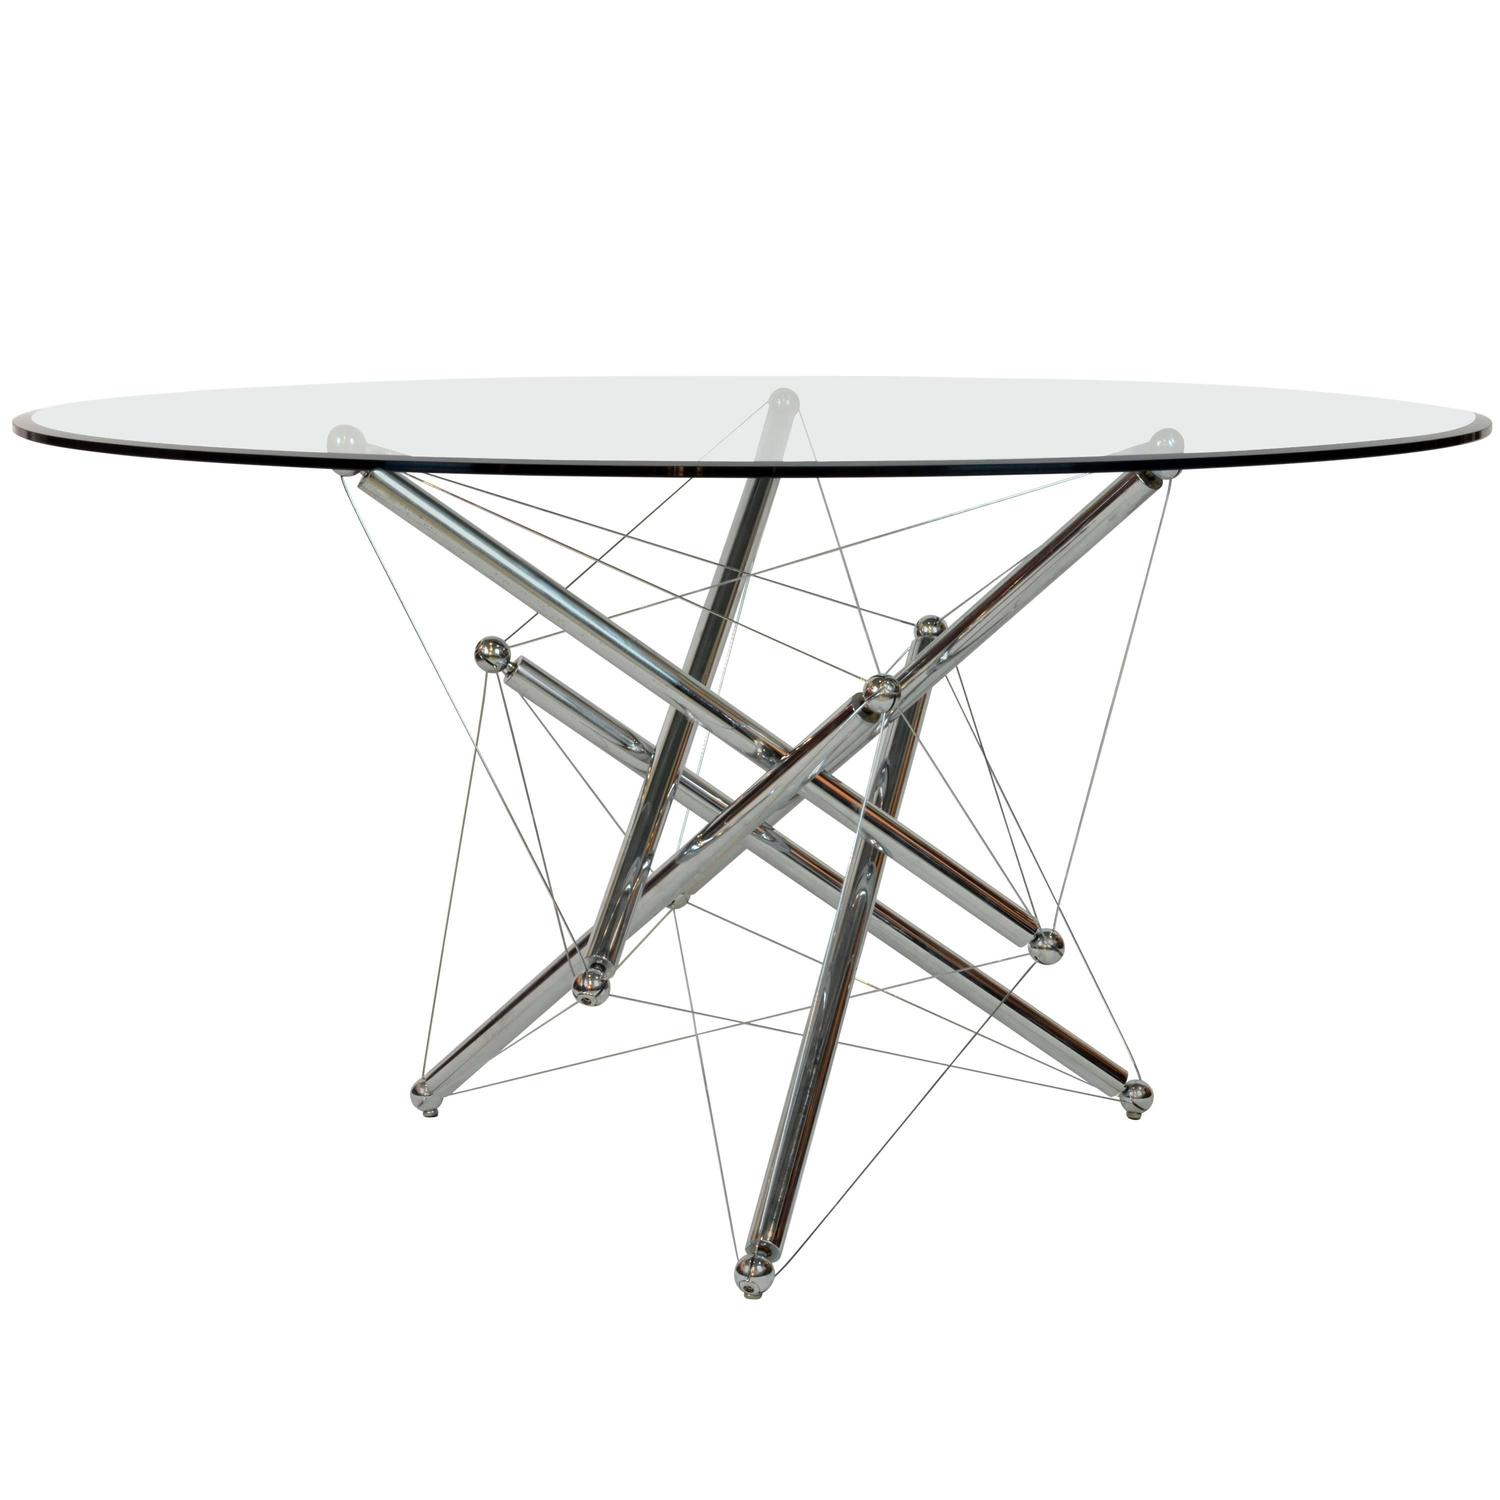 Italian Cassina Chrome and Glass Atomic Style Dining Table